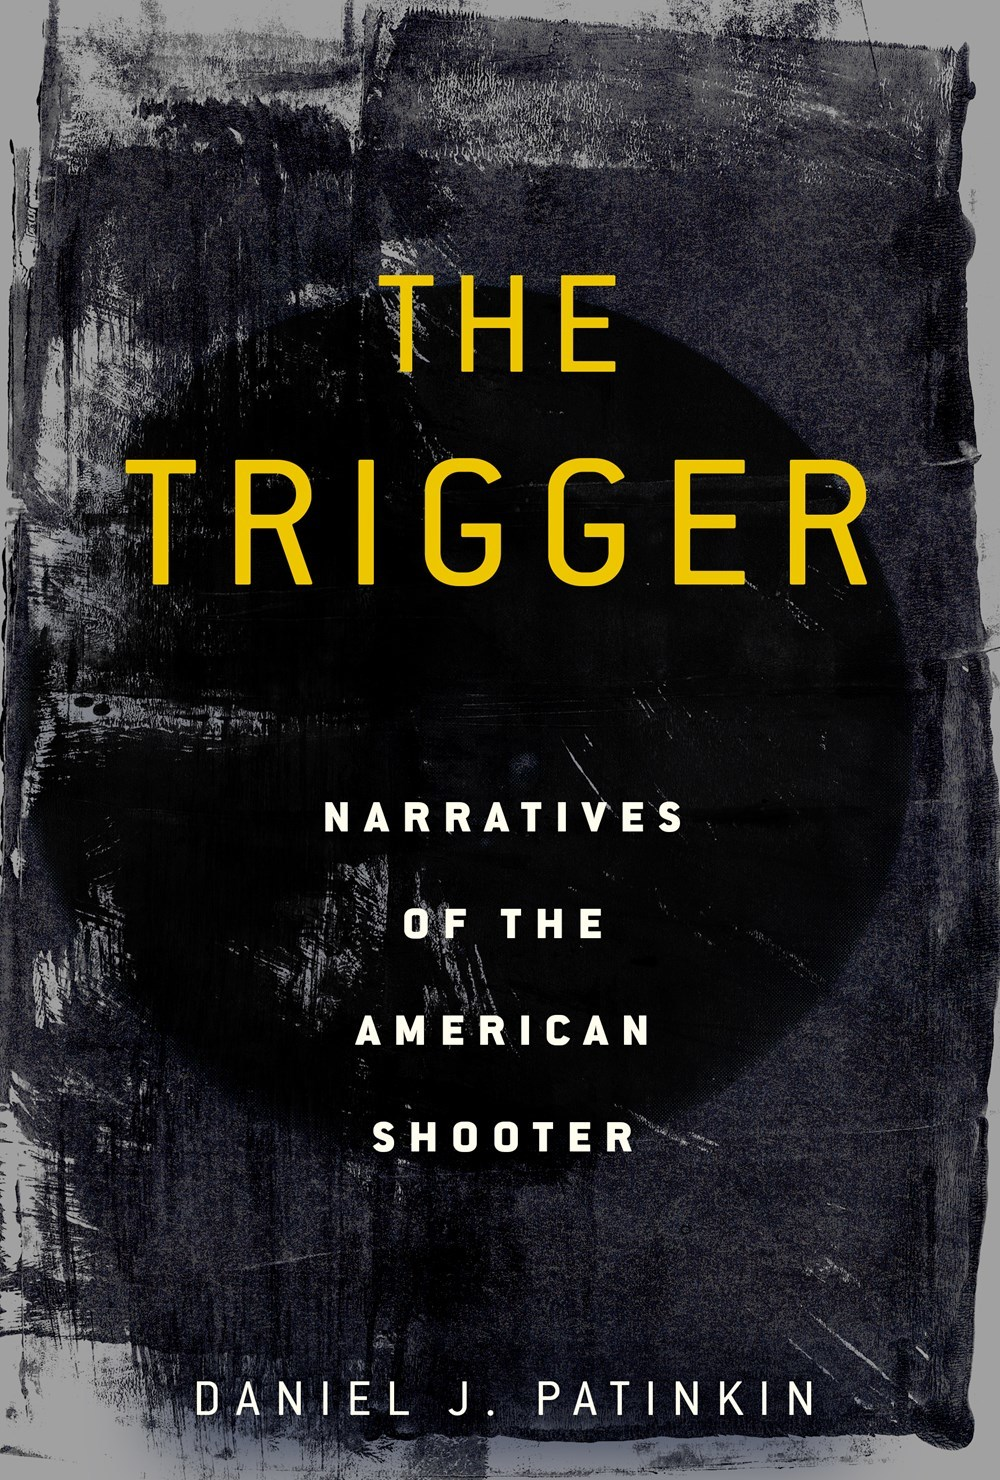 The Trigger Narratives of the American Shooter